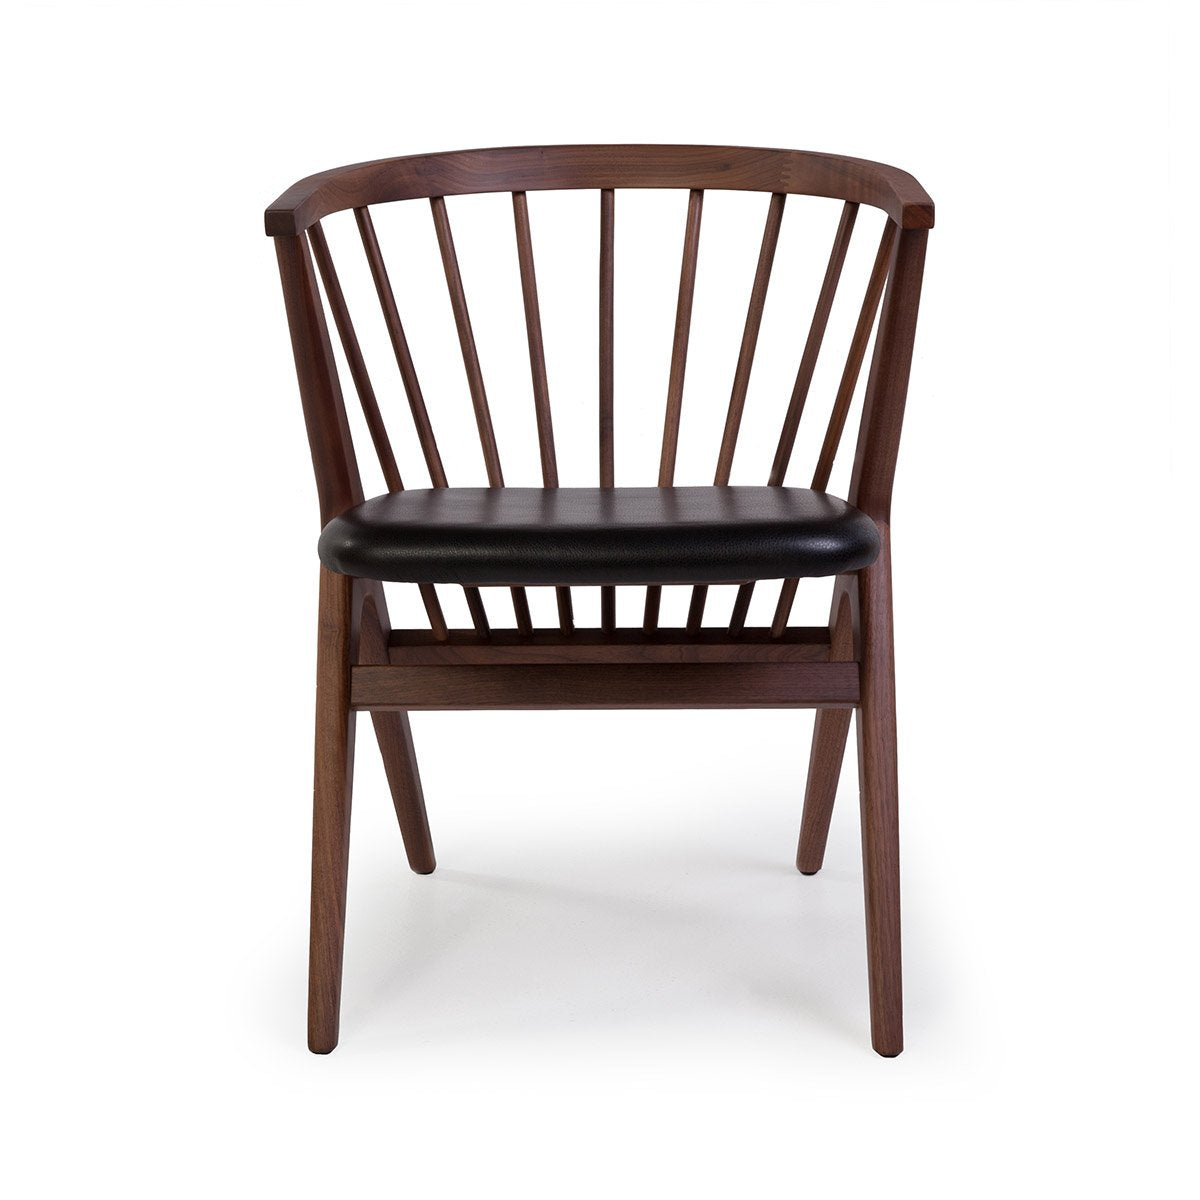 [FEC3005WALNUT] Canberra dining chair